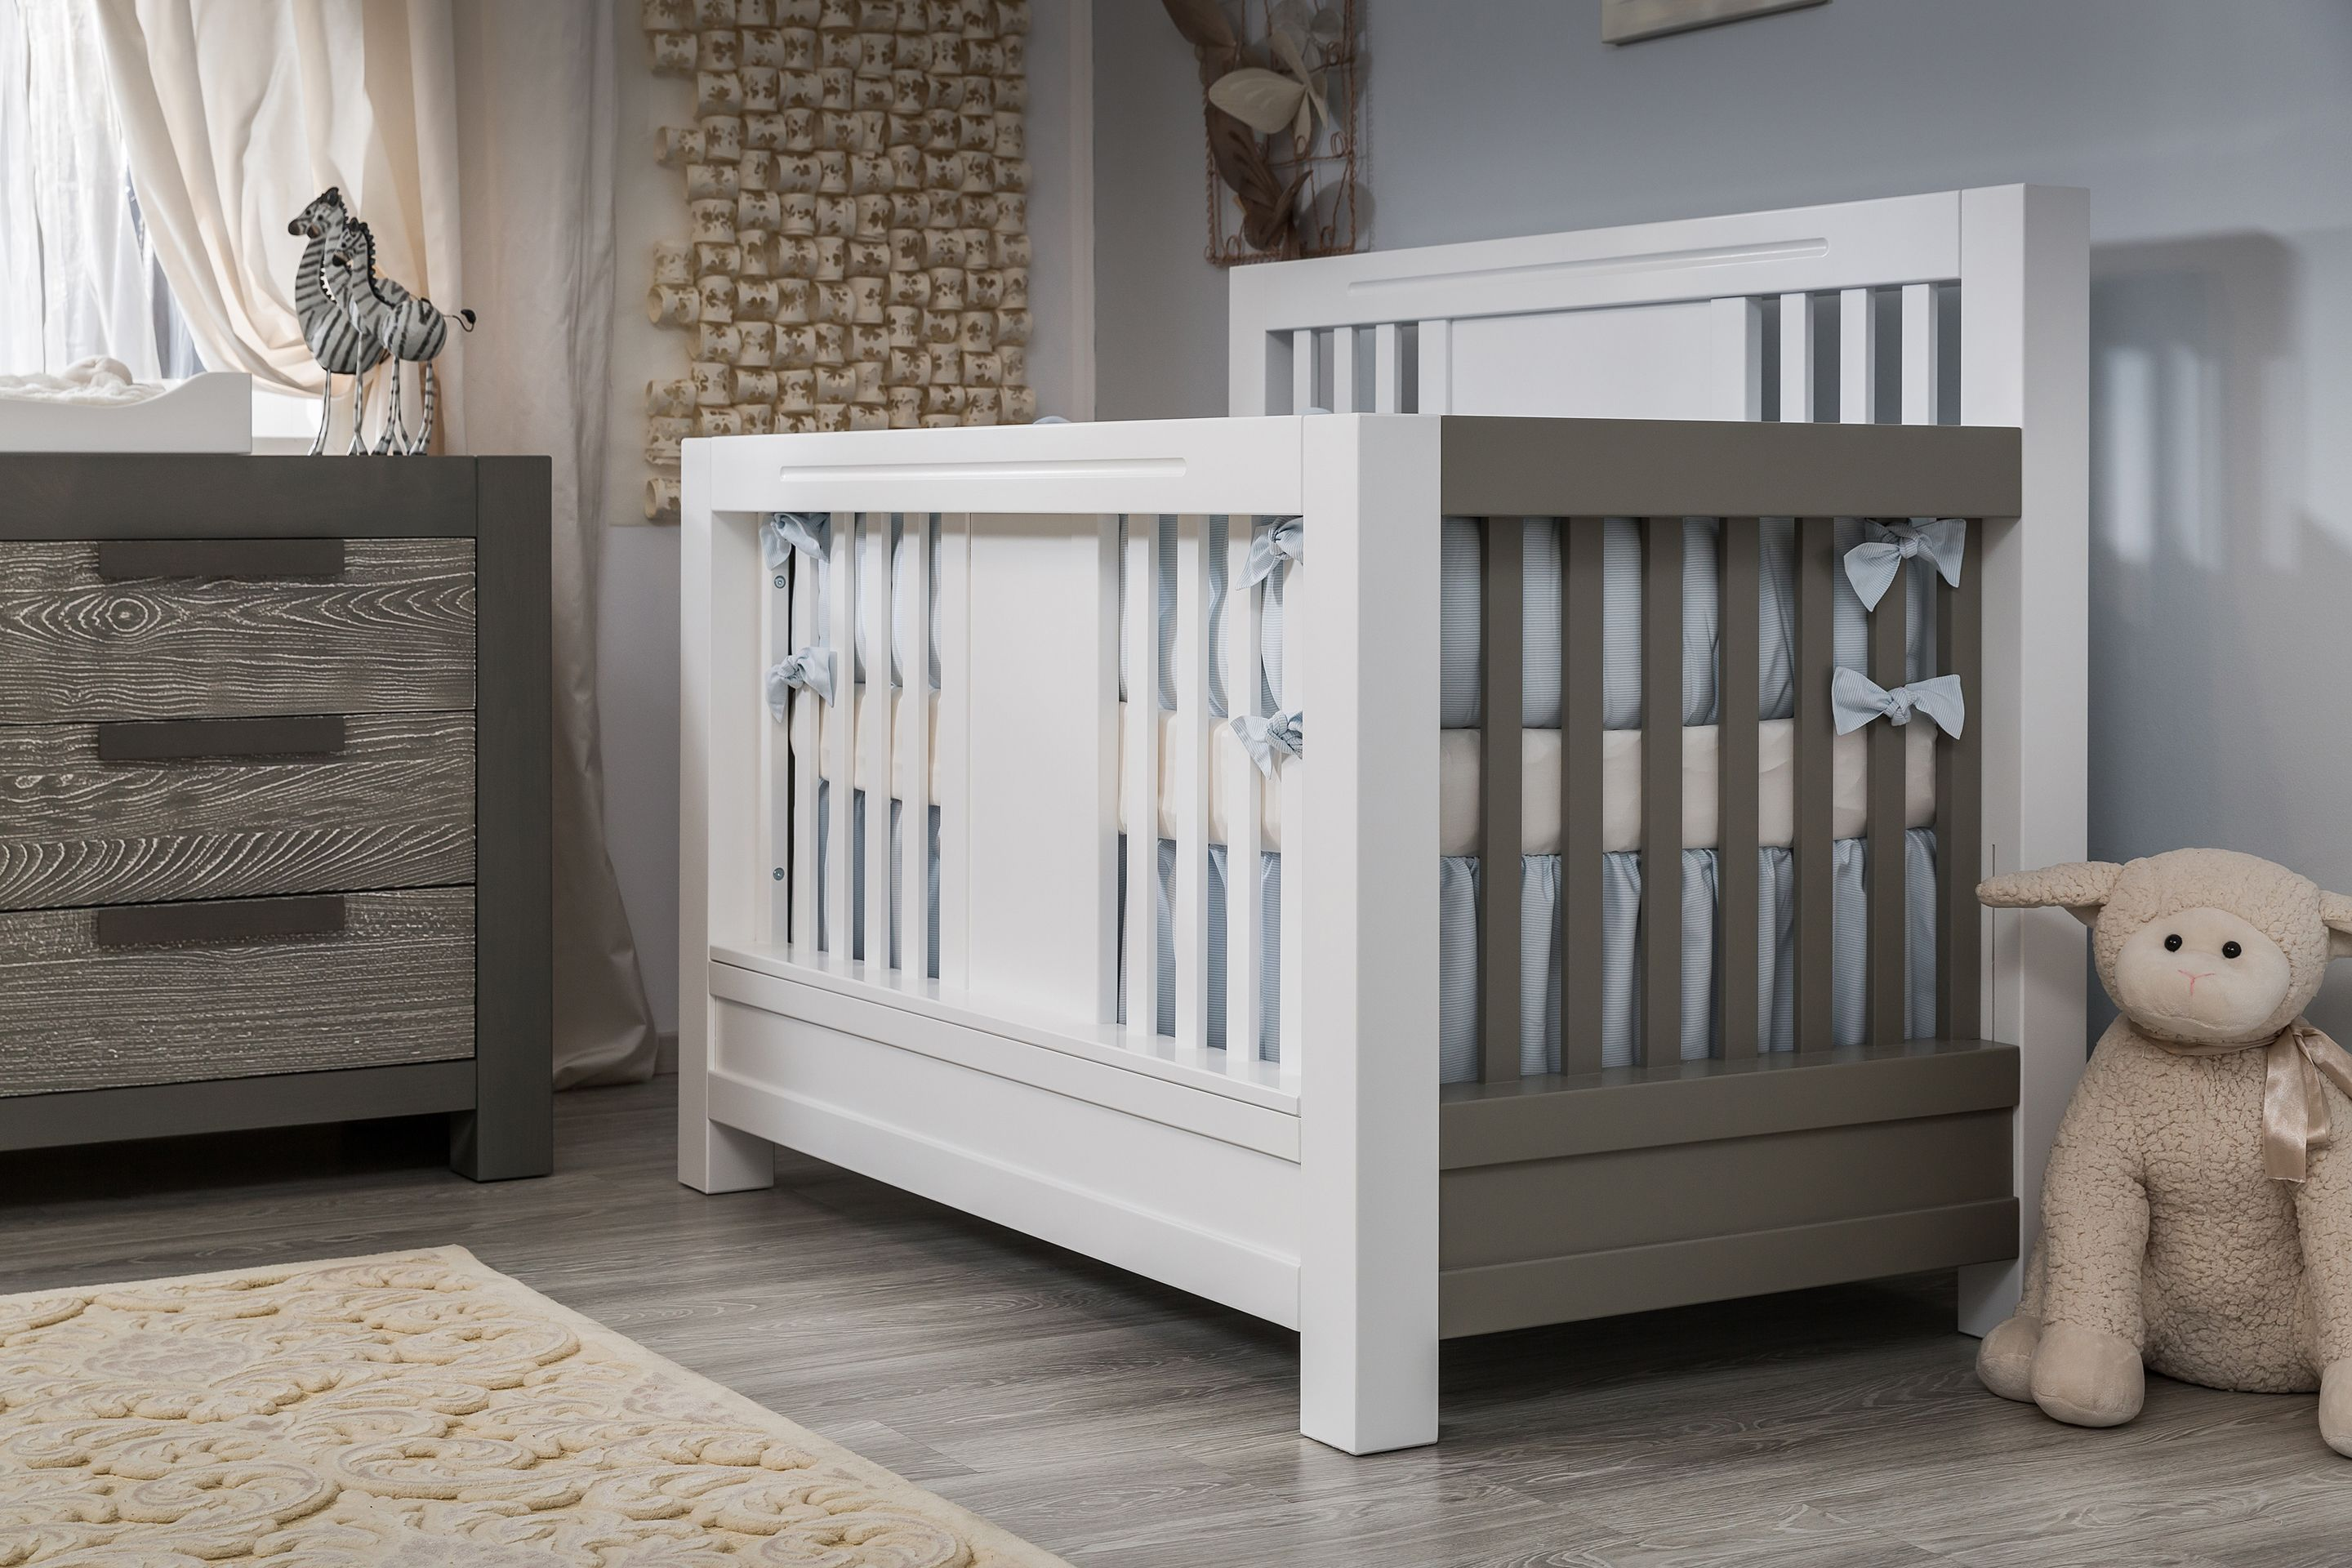 imperial baby manchester tots furniture at available pin first cribs crib s adorable romina collection uk